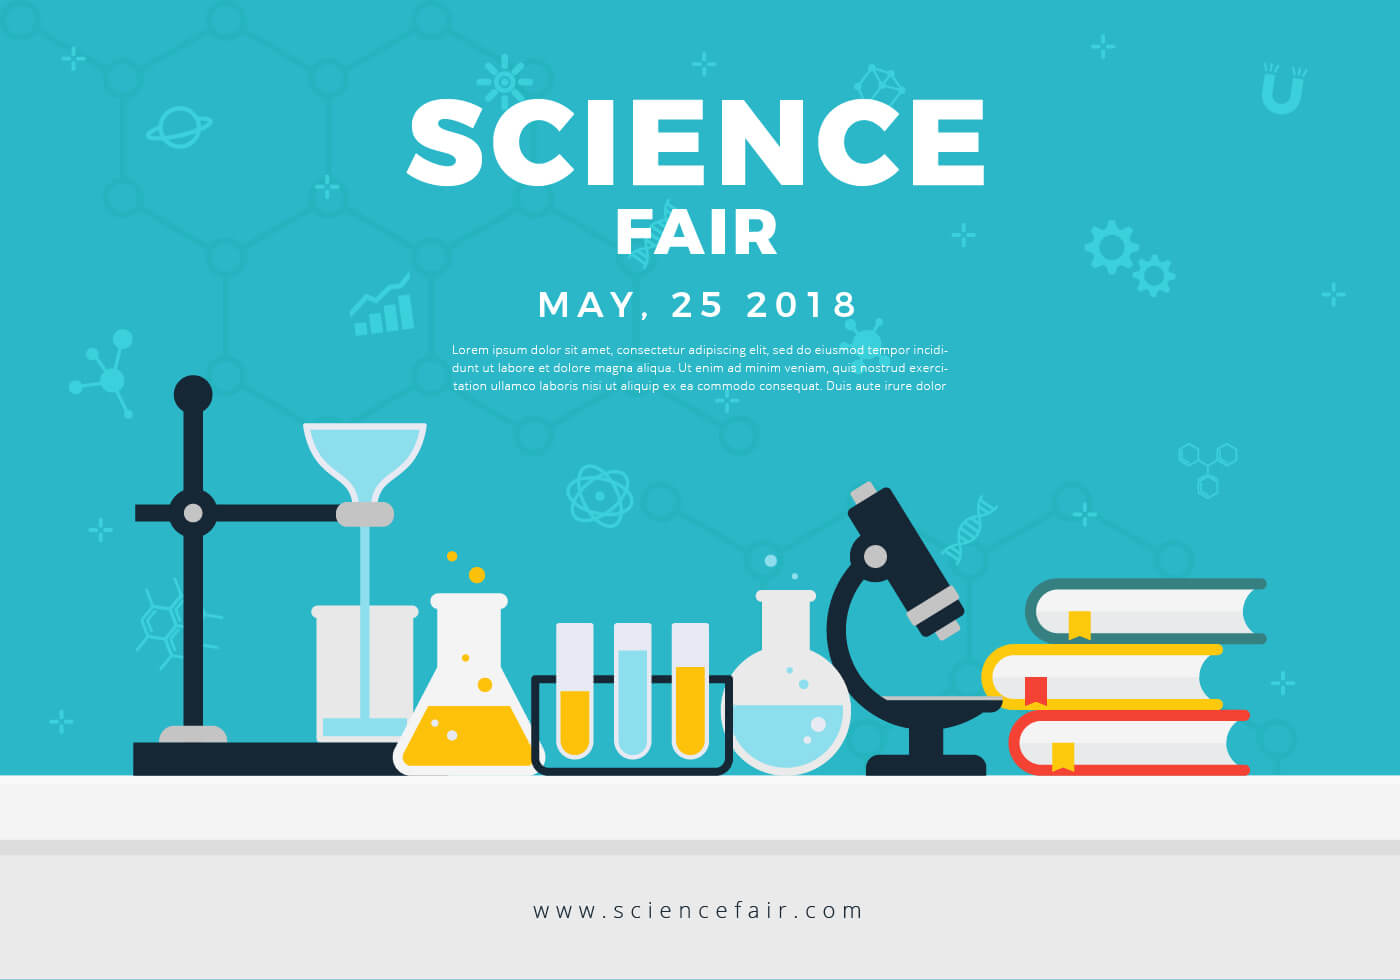 Science Fair Poster Banner - Download Free Vectors, Clipart Intended For Science Fair Banner Template